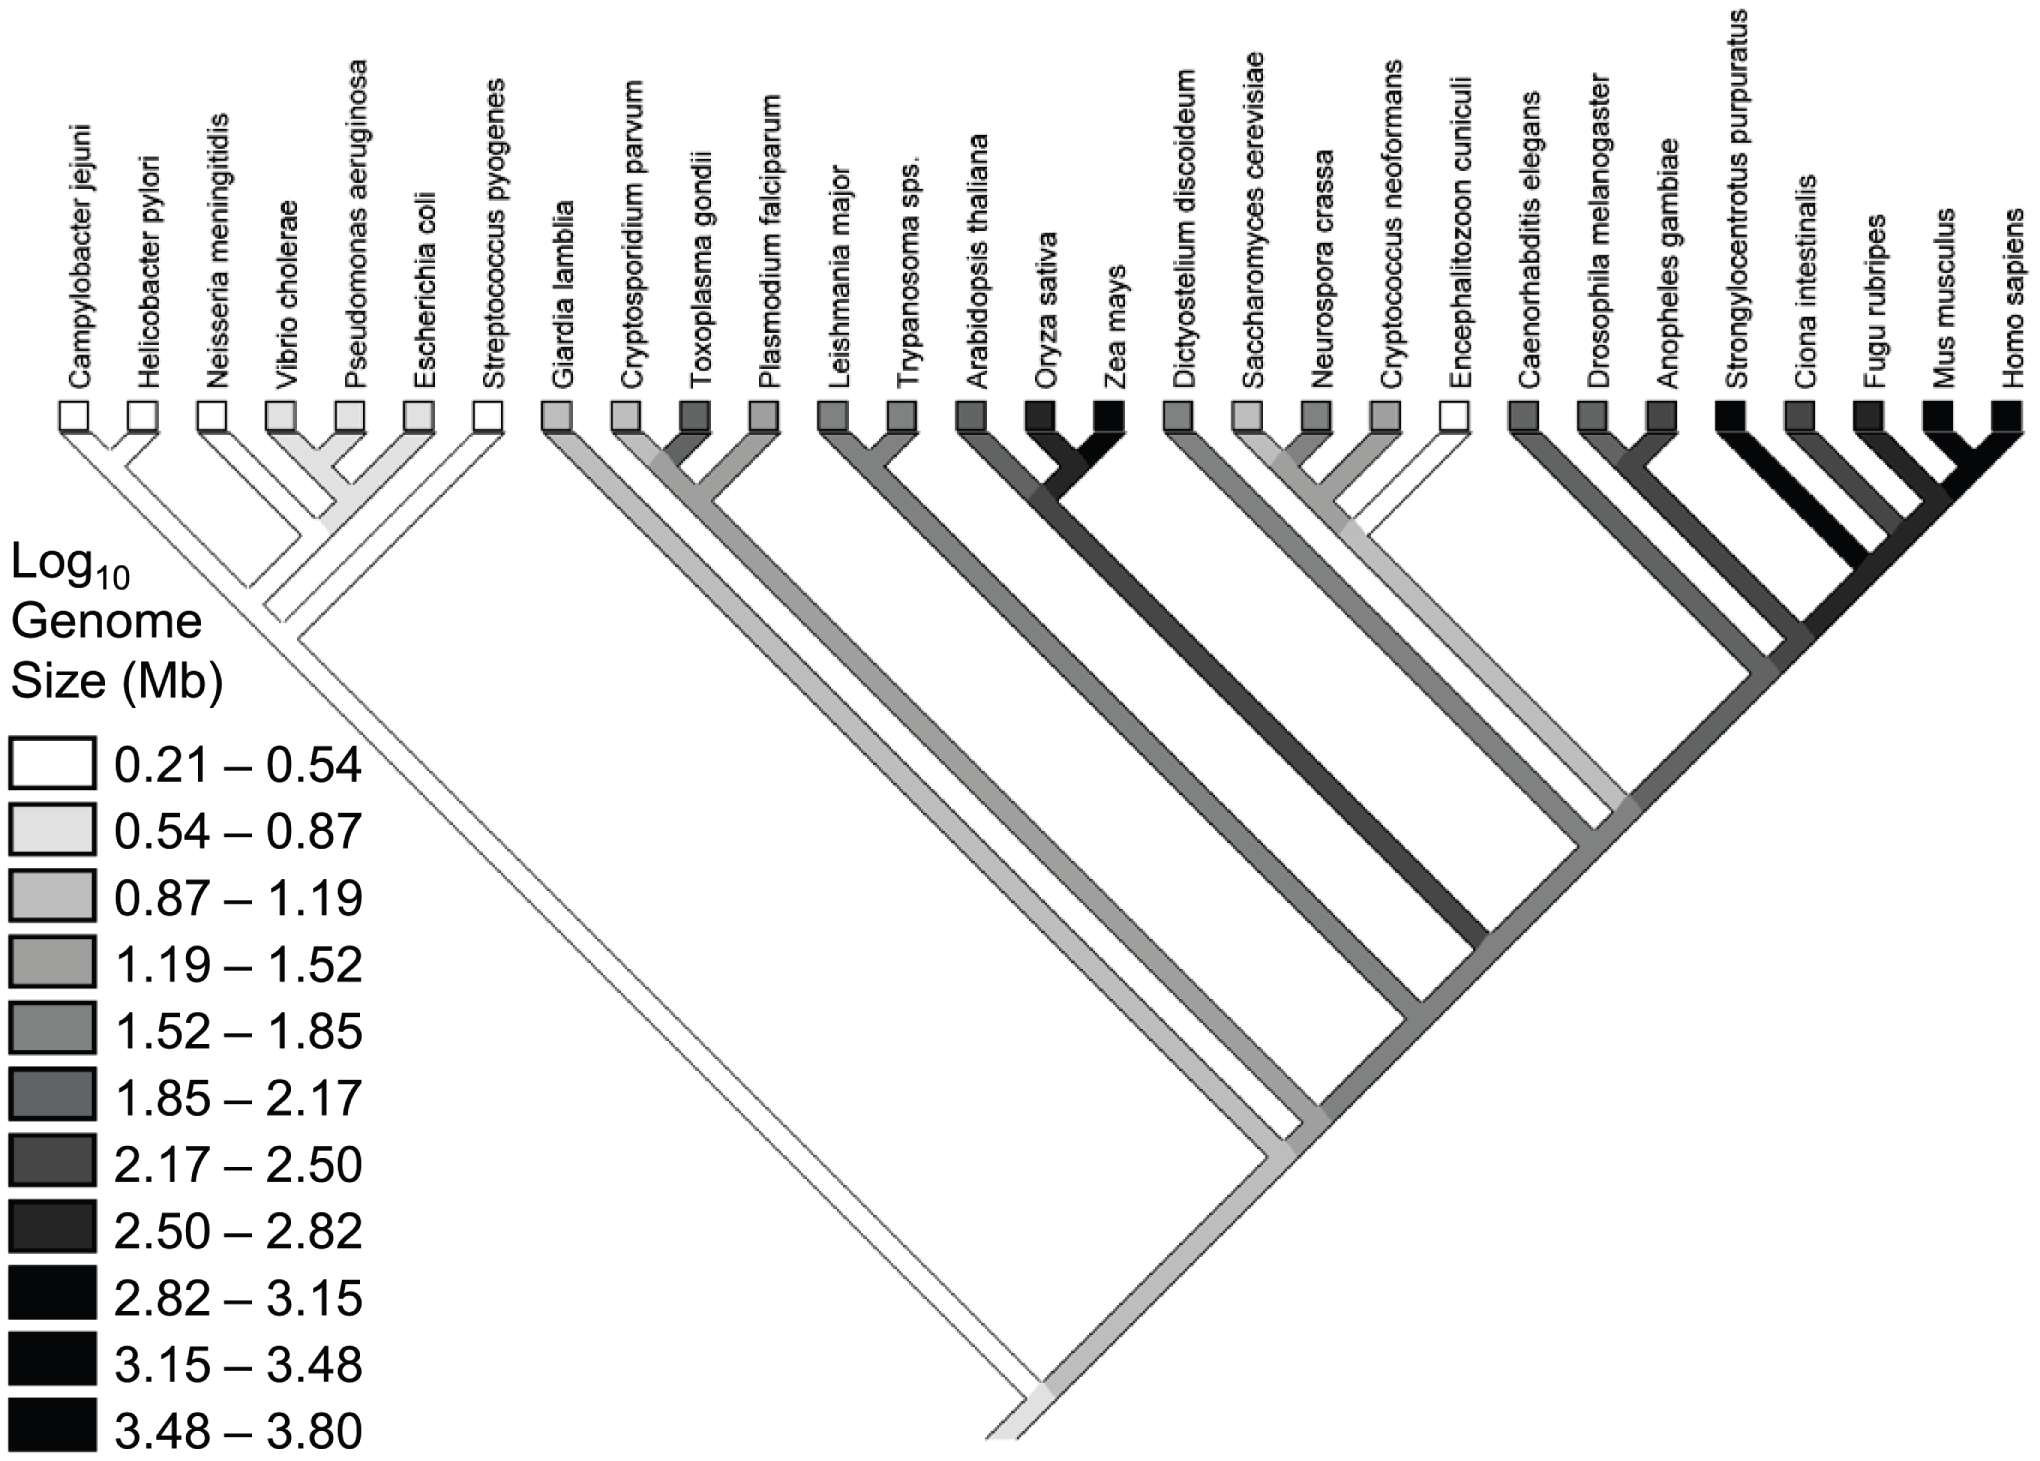 """Phylogeny for the species in the Lynch & Conery dataset <em class=""""ref"""">[<b>7</b>]</em>, with a reconstruction of genome sizes."""